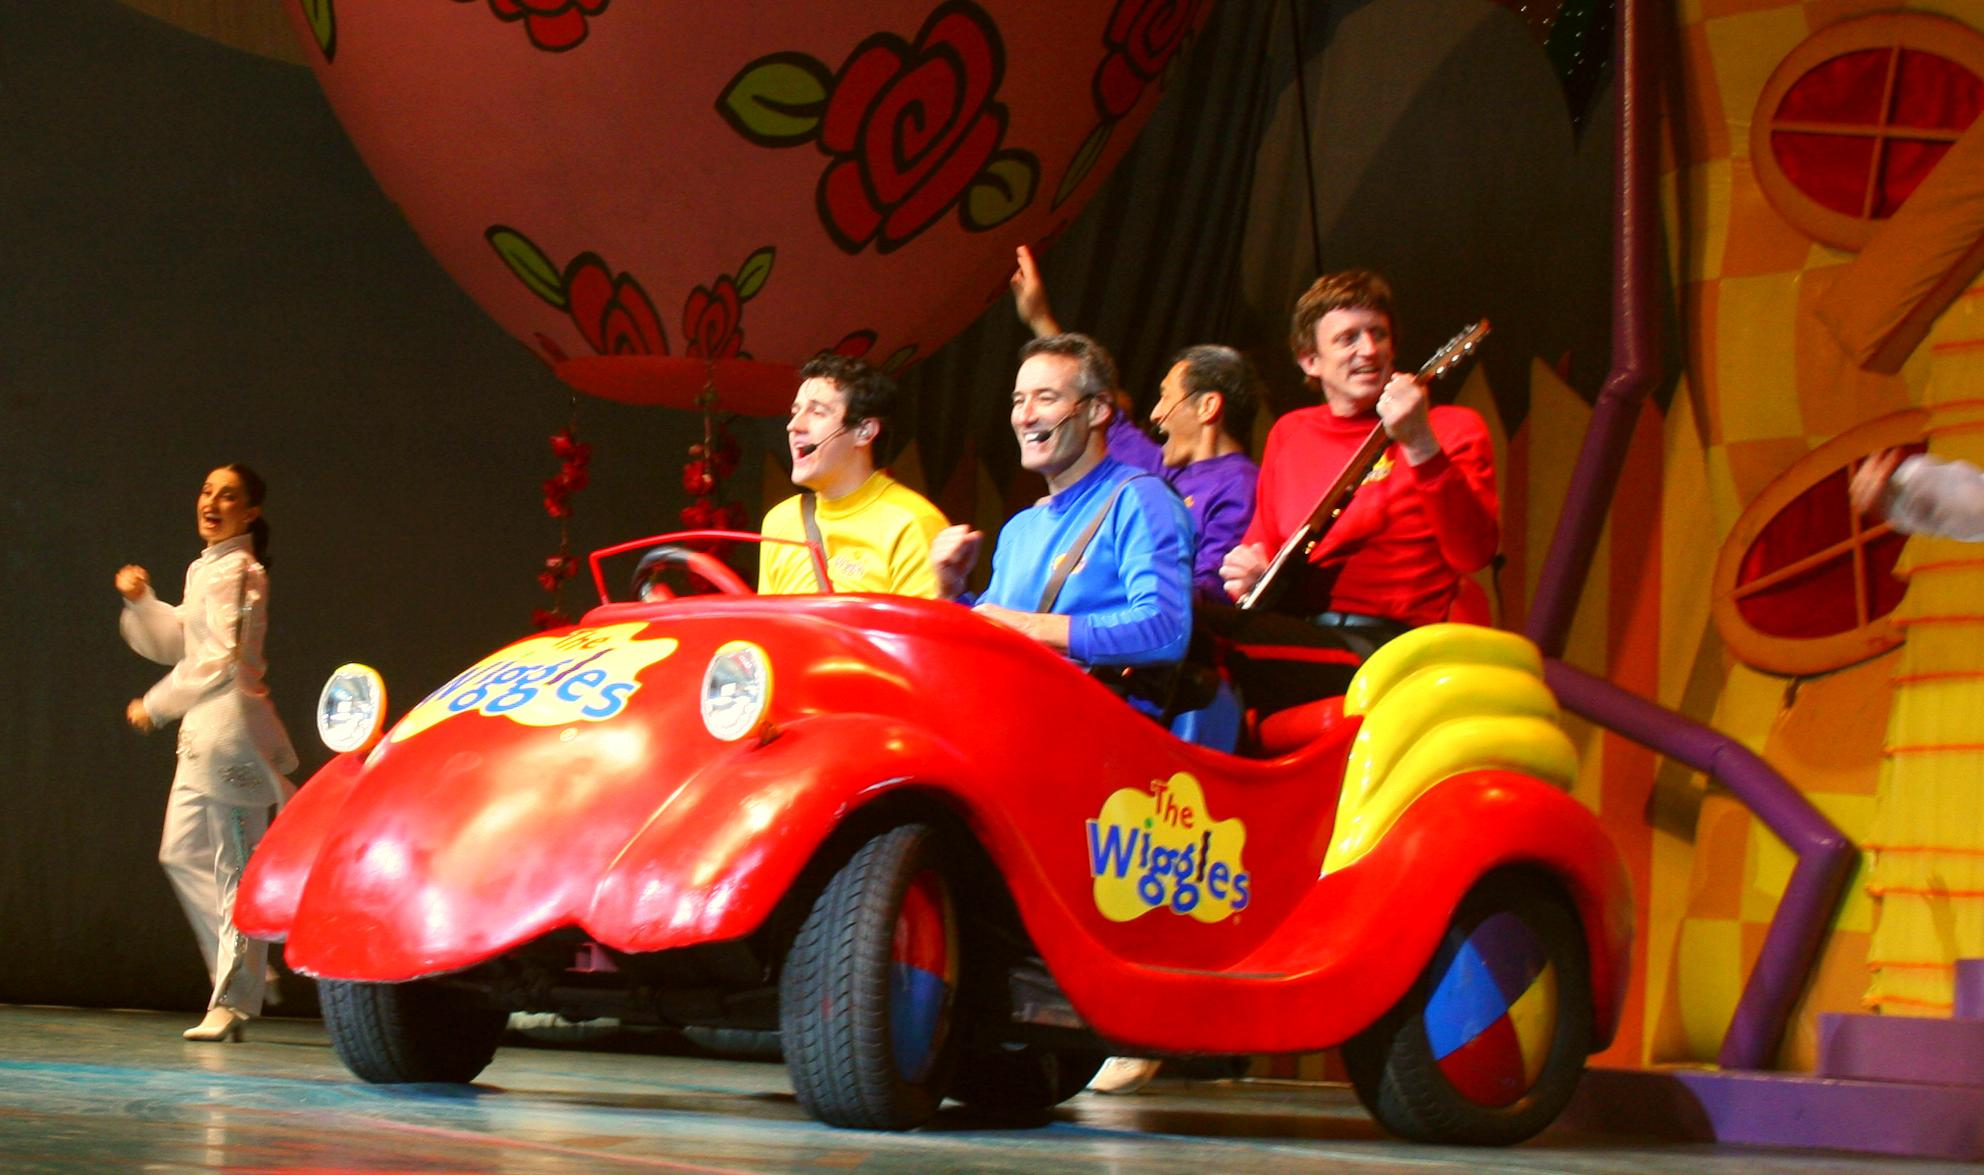 The Wiggles Perth